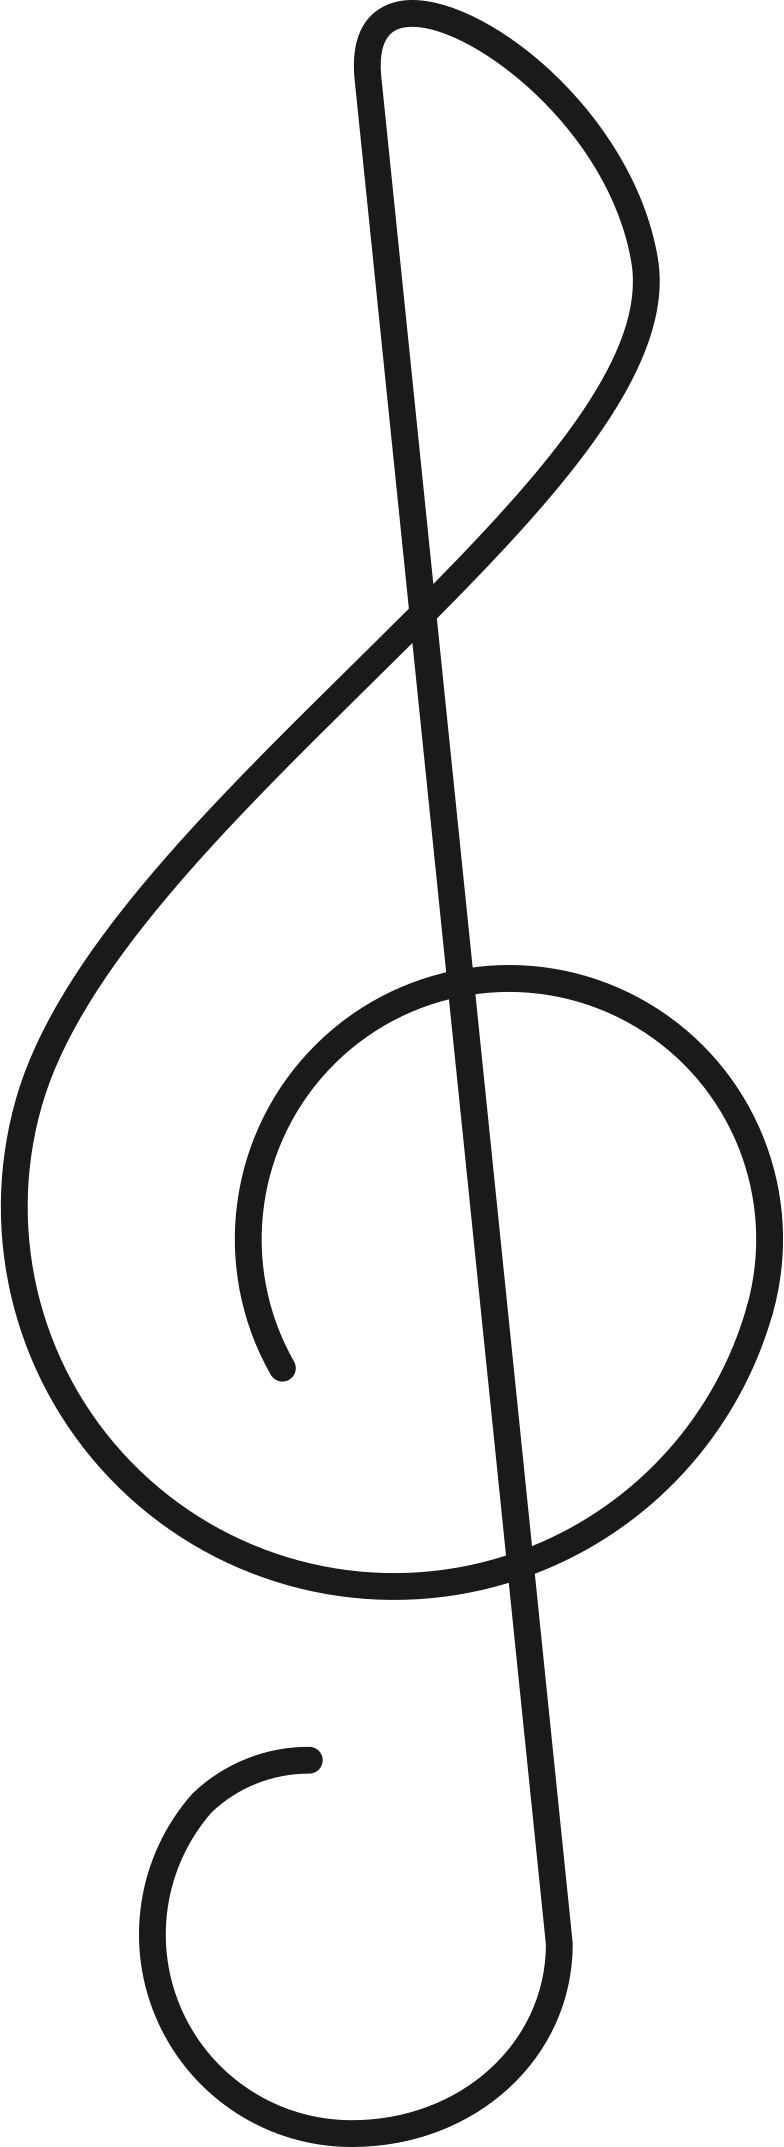 treble clef Clipart illustration in PNG, SVG